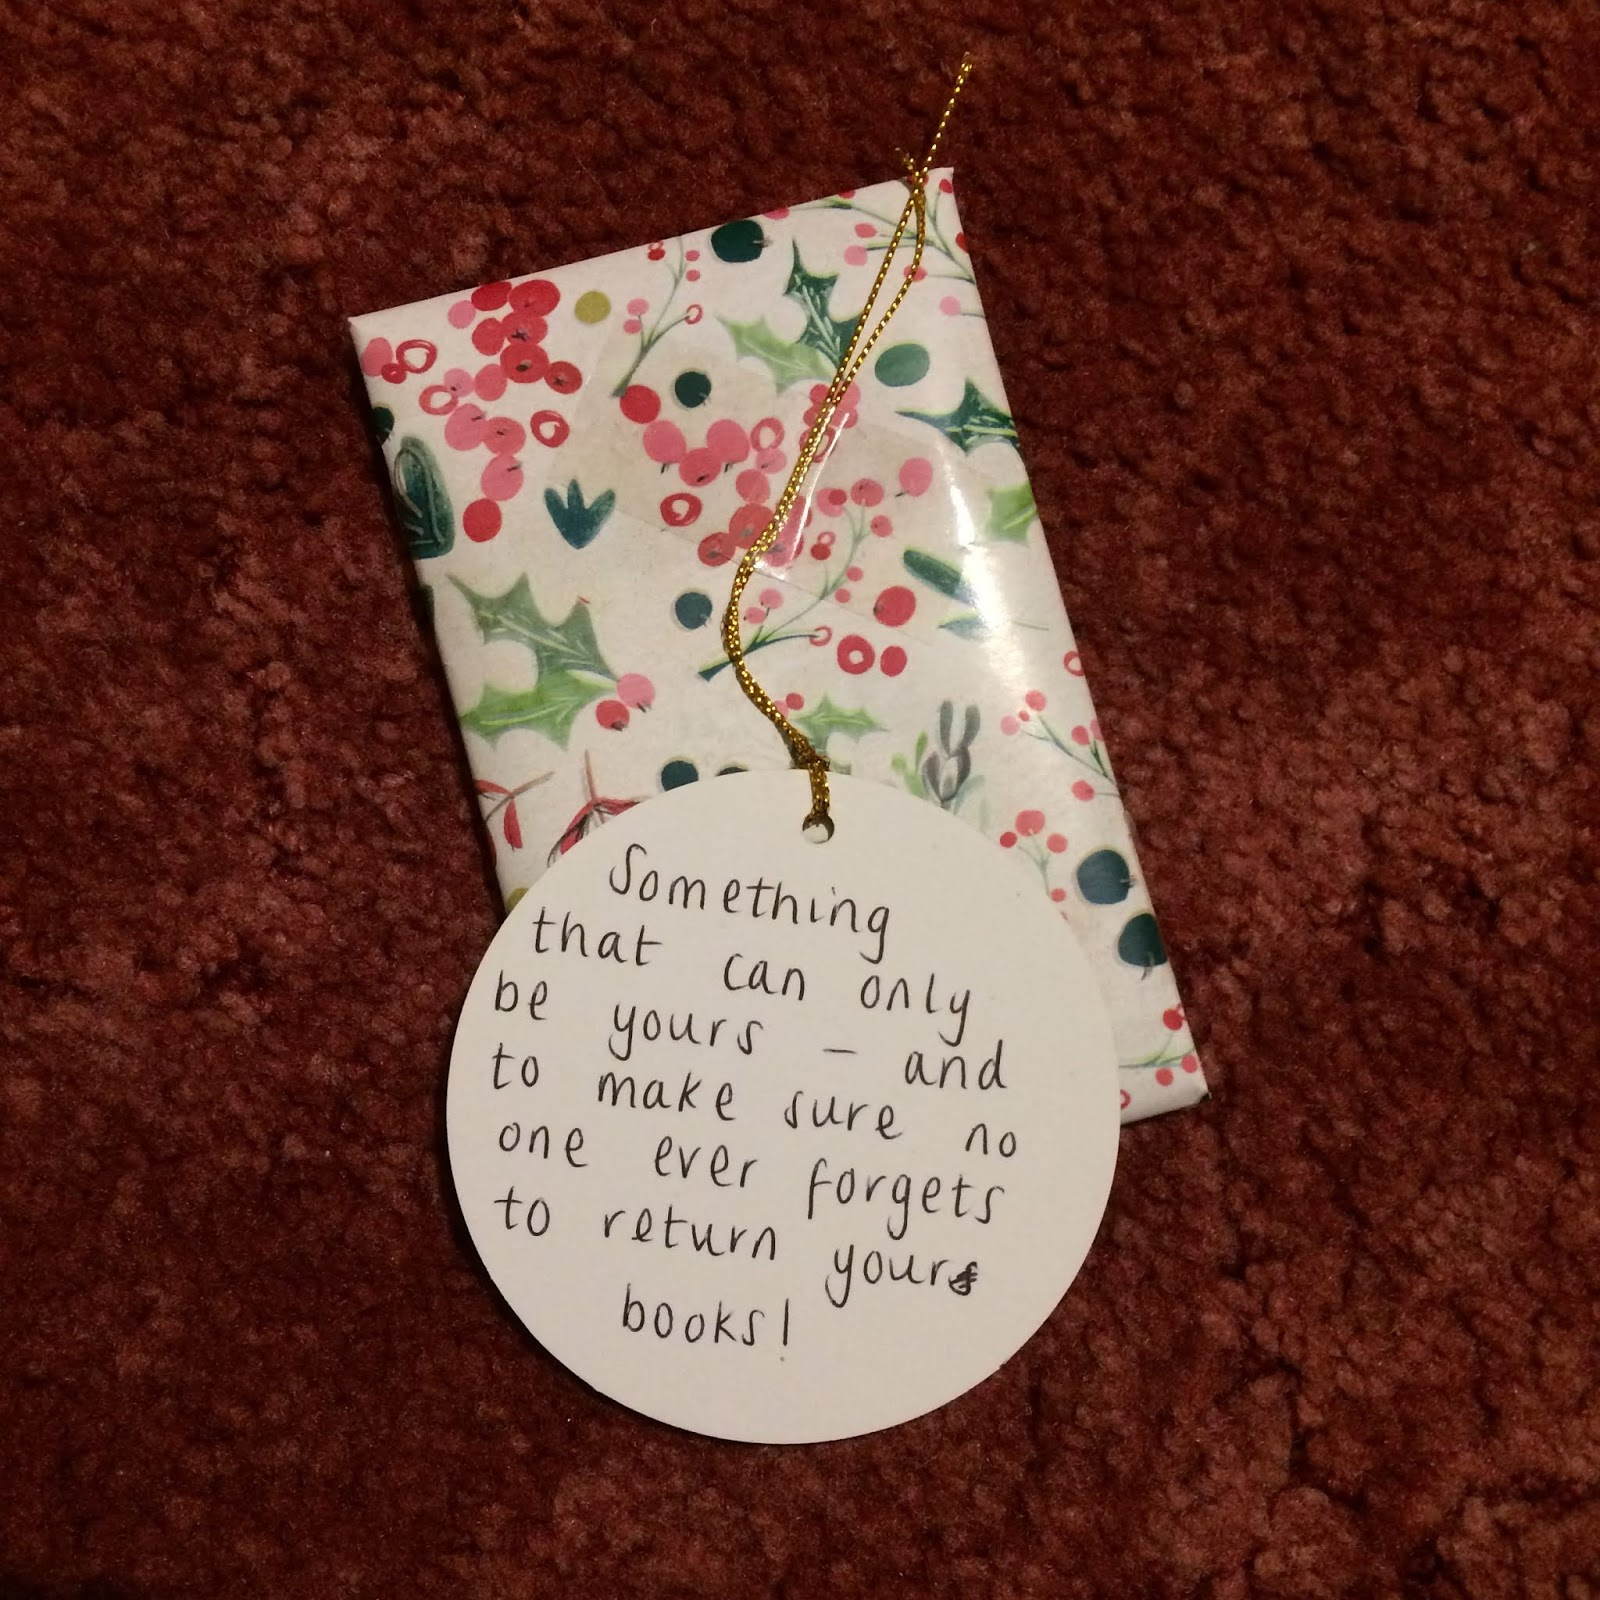 Wrapped present with tag reading, Something that can only be yours - and to make sure no-one ever forgets to return your books!